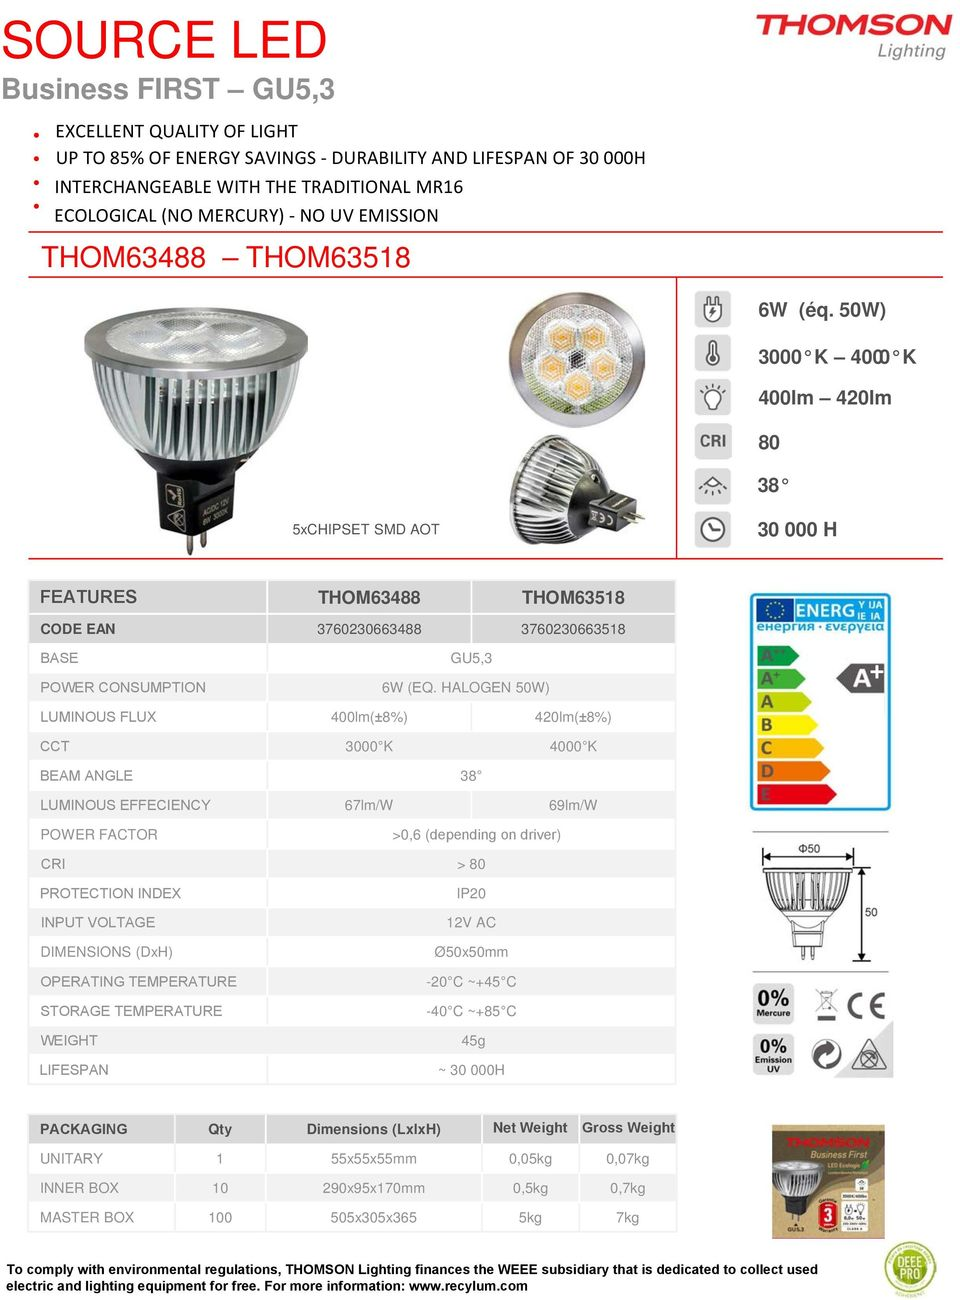 Table Of Contents Thomson Values Lighting Product Led Driver Powers Halogen Replacement 50w 3000 K 4000 400lm 420lm 80 38 5xchipset Smd Aot 30 000 H